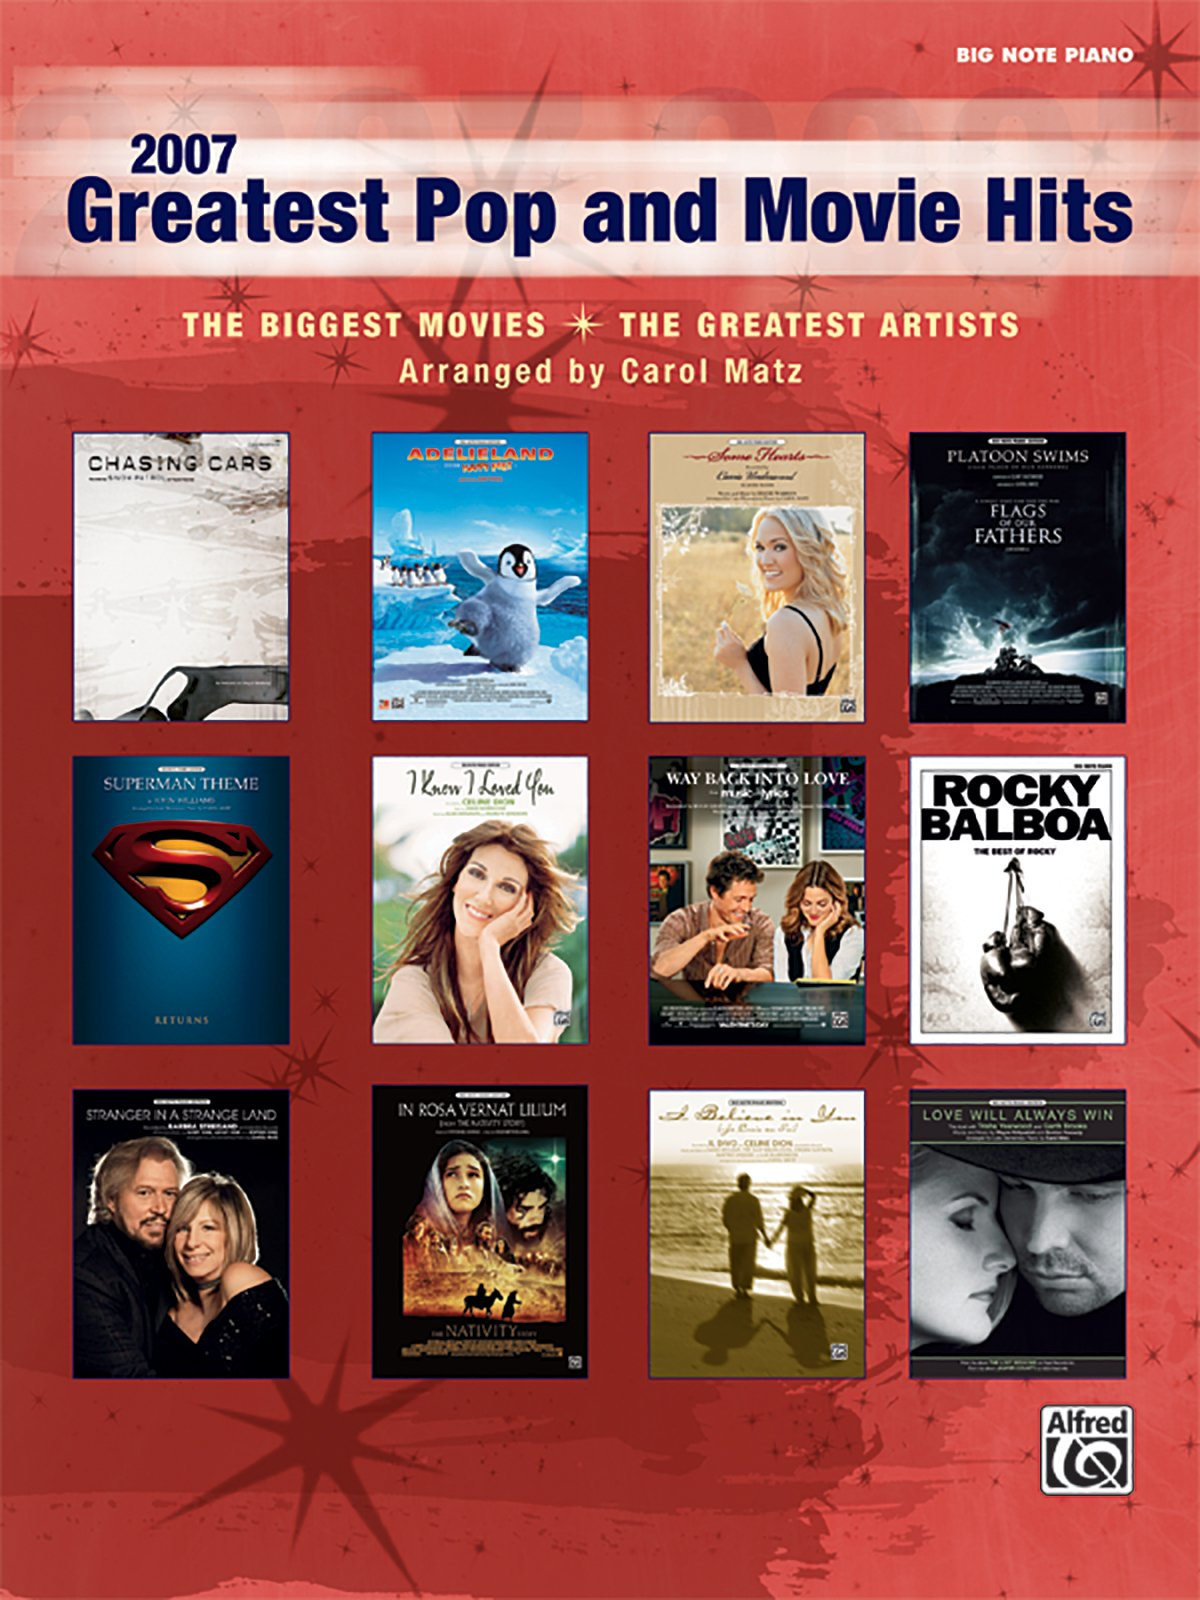 Download 2007 Greatest Pop and Movie Hits: The Biggest Movies * The Greatest Artists (Big Note Piano) ebook